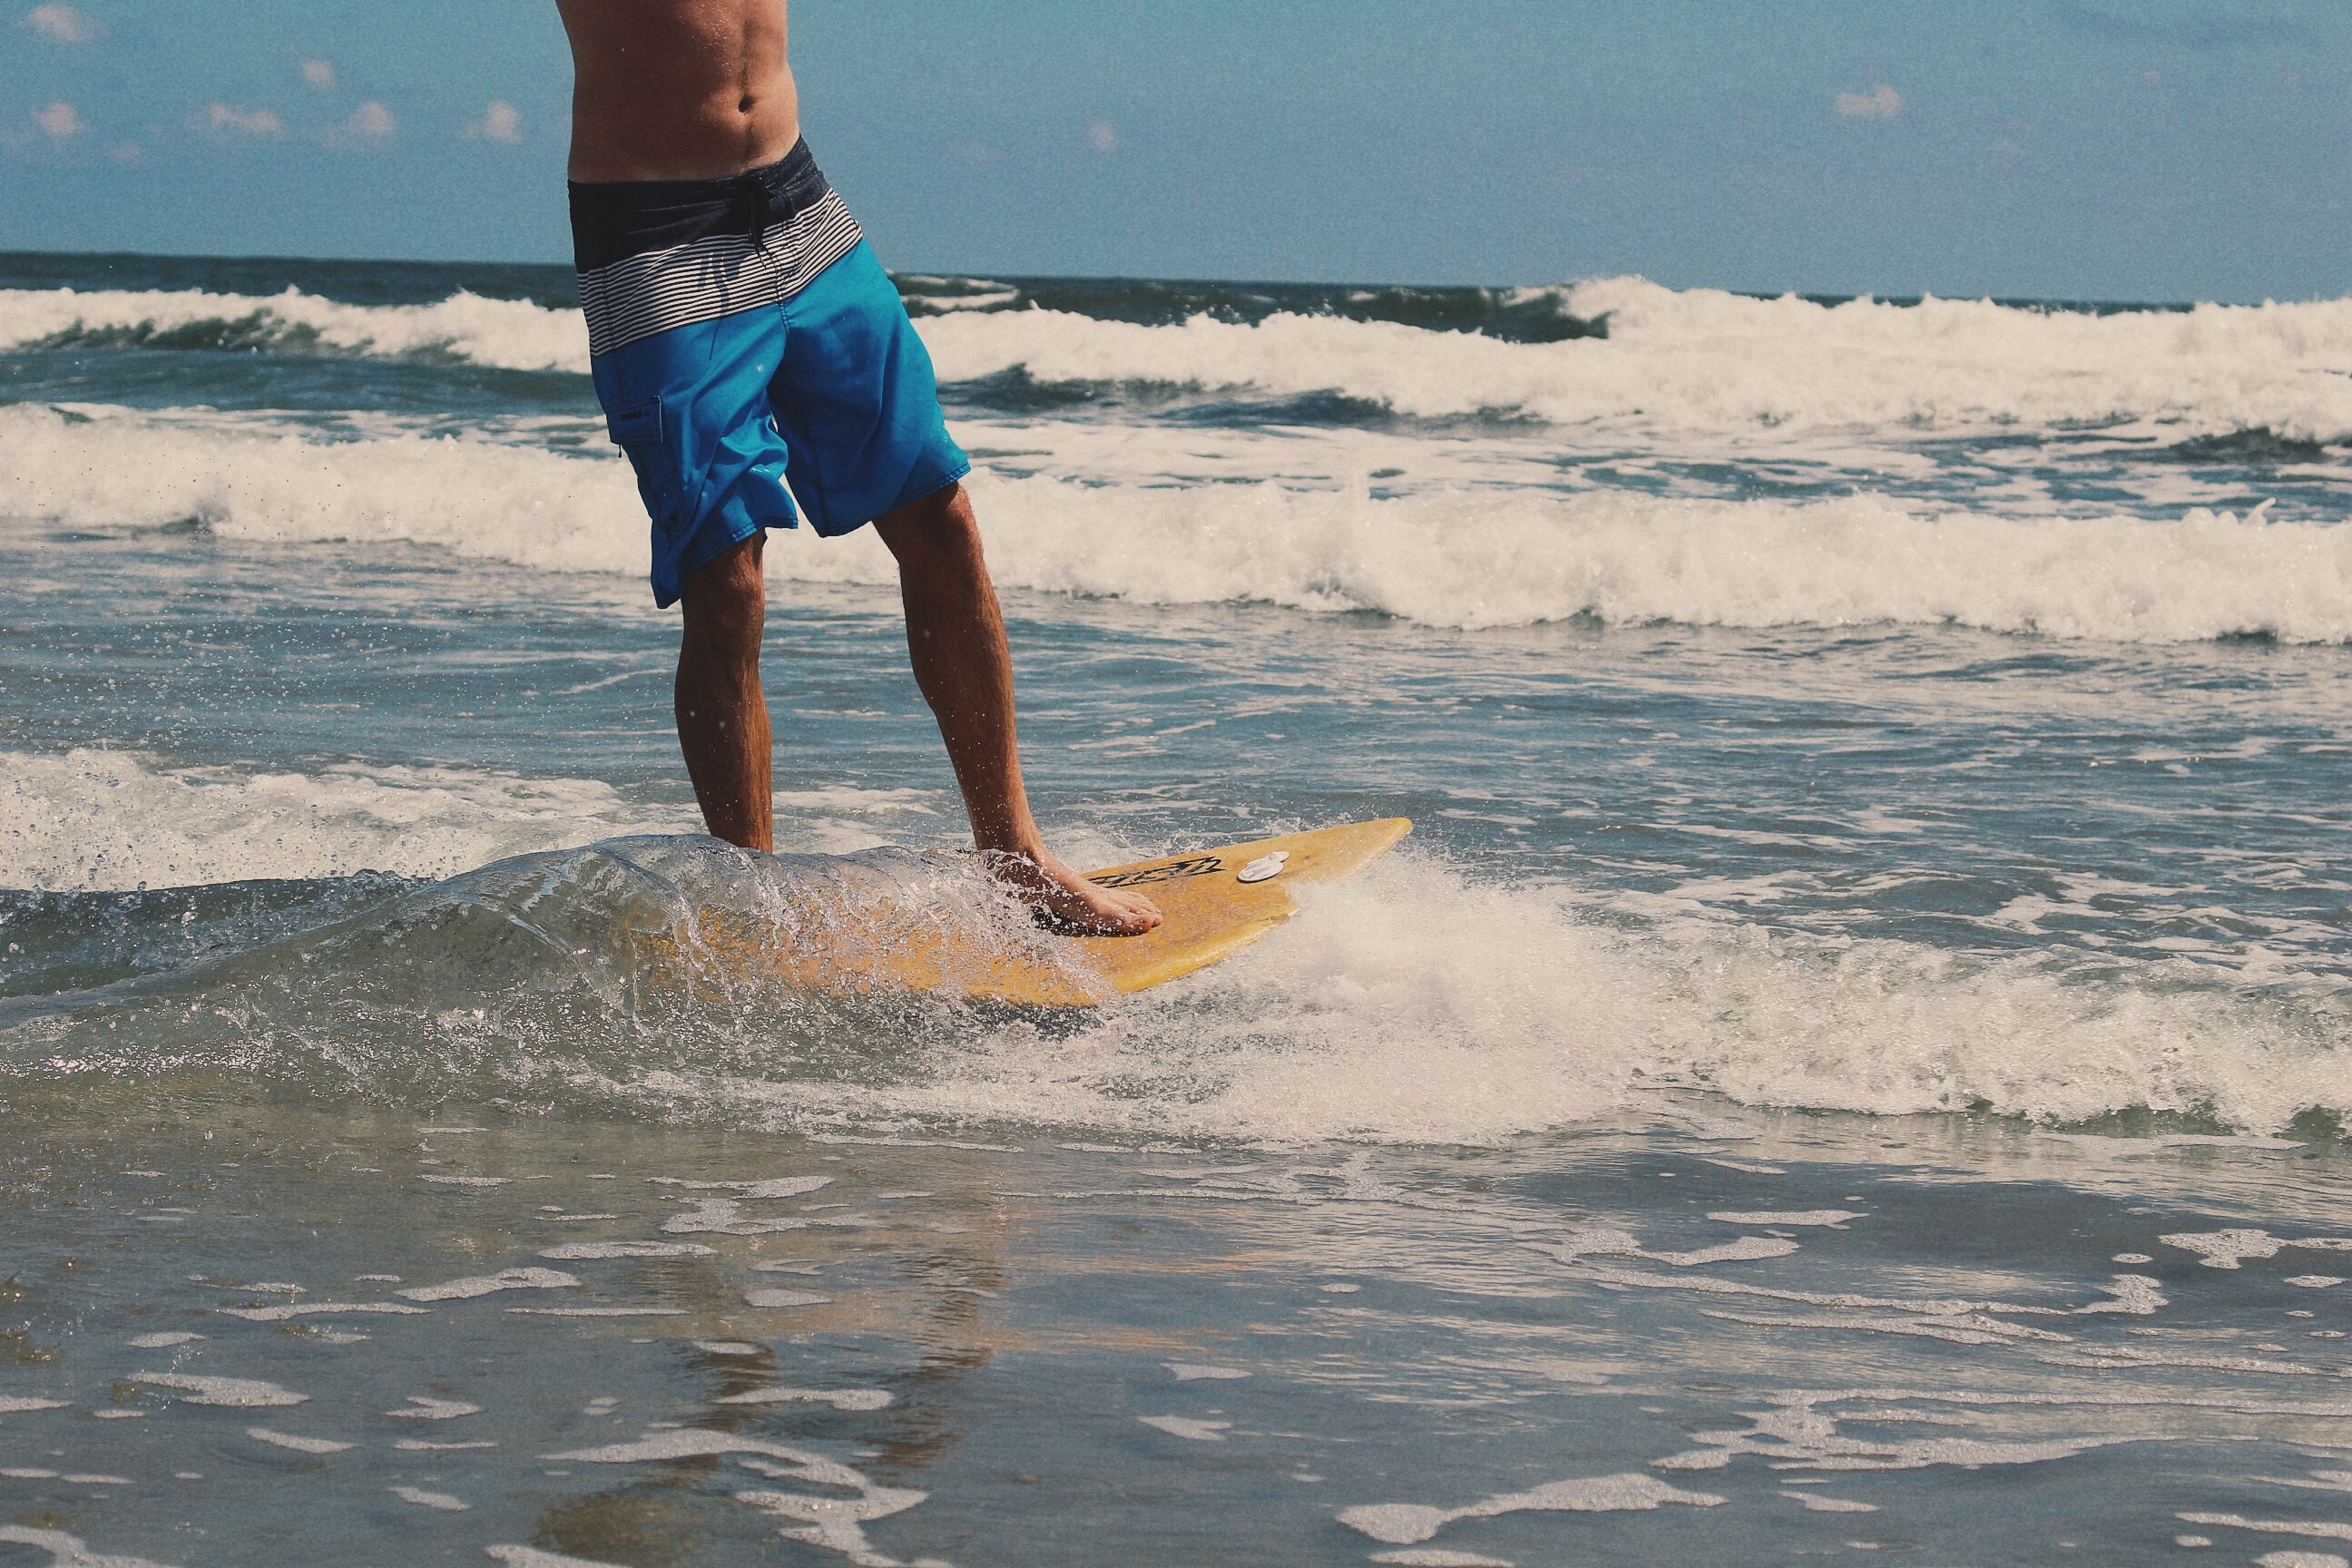 different types of skimboard What is the best time to go skimboarding in summer why  how can you describe the different types of skimboards  i borrowed my friend's skimboard for a .